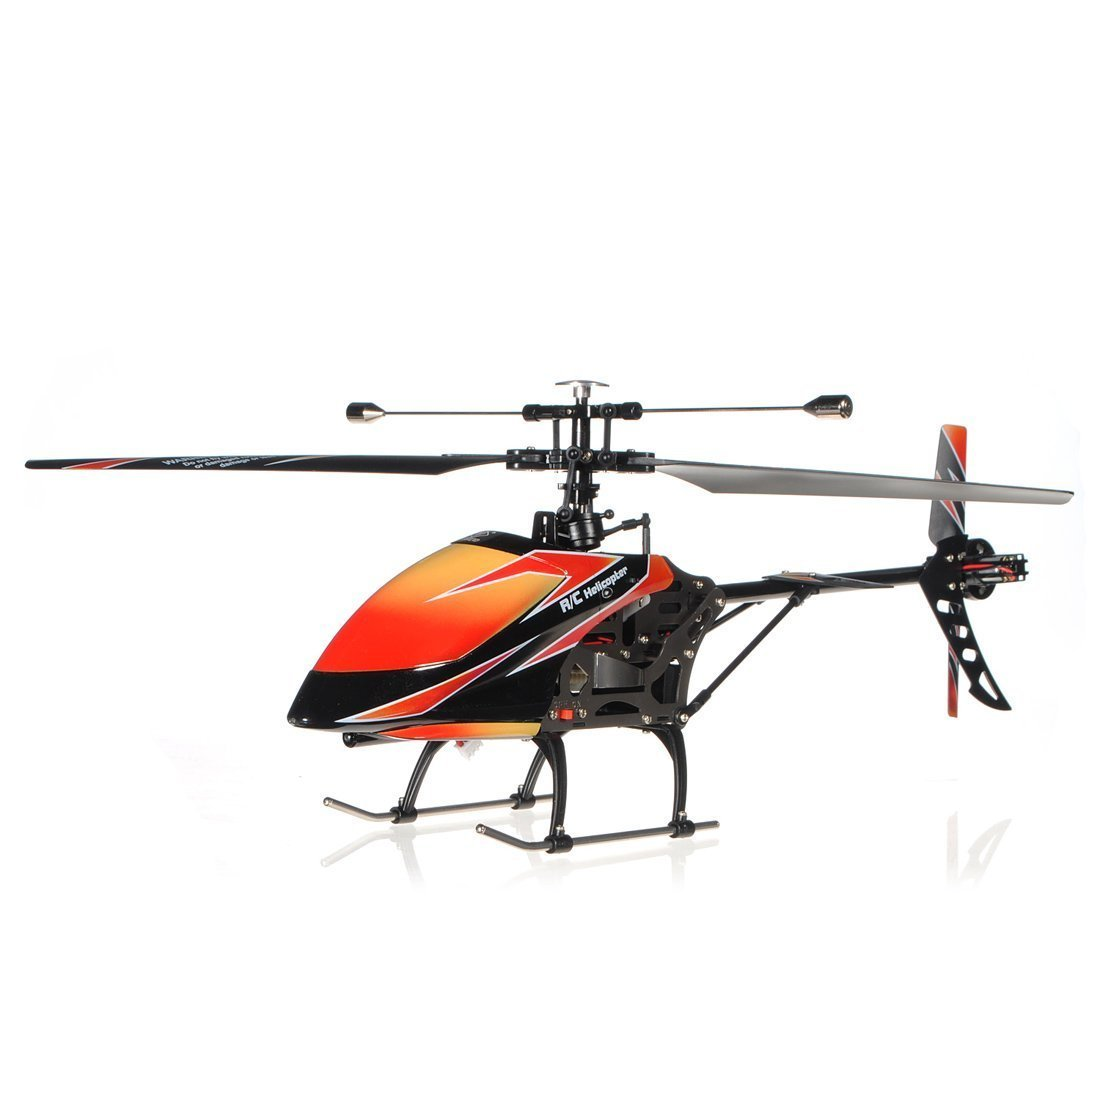 heliocptero Large WLtoys V912 Sky Dancer 4CH RC Helicopter With Gyro BNF without transmitter(China (Mainland))